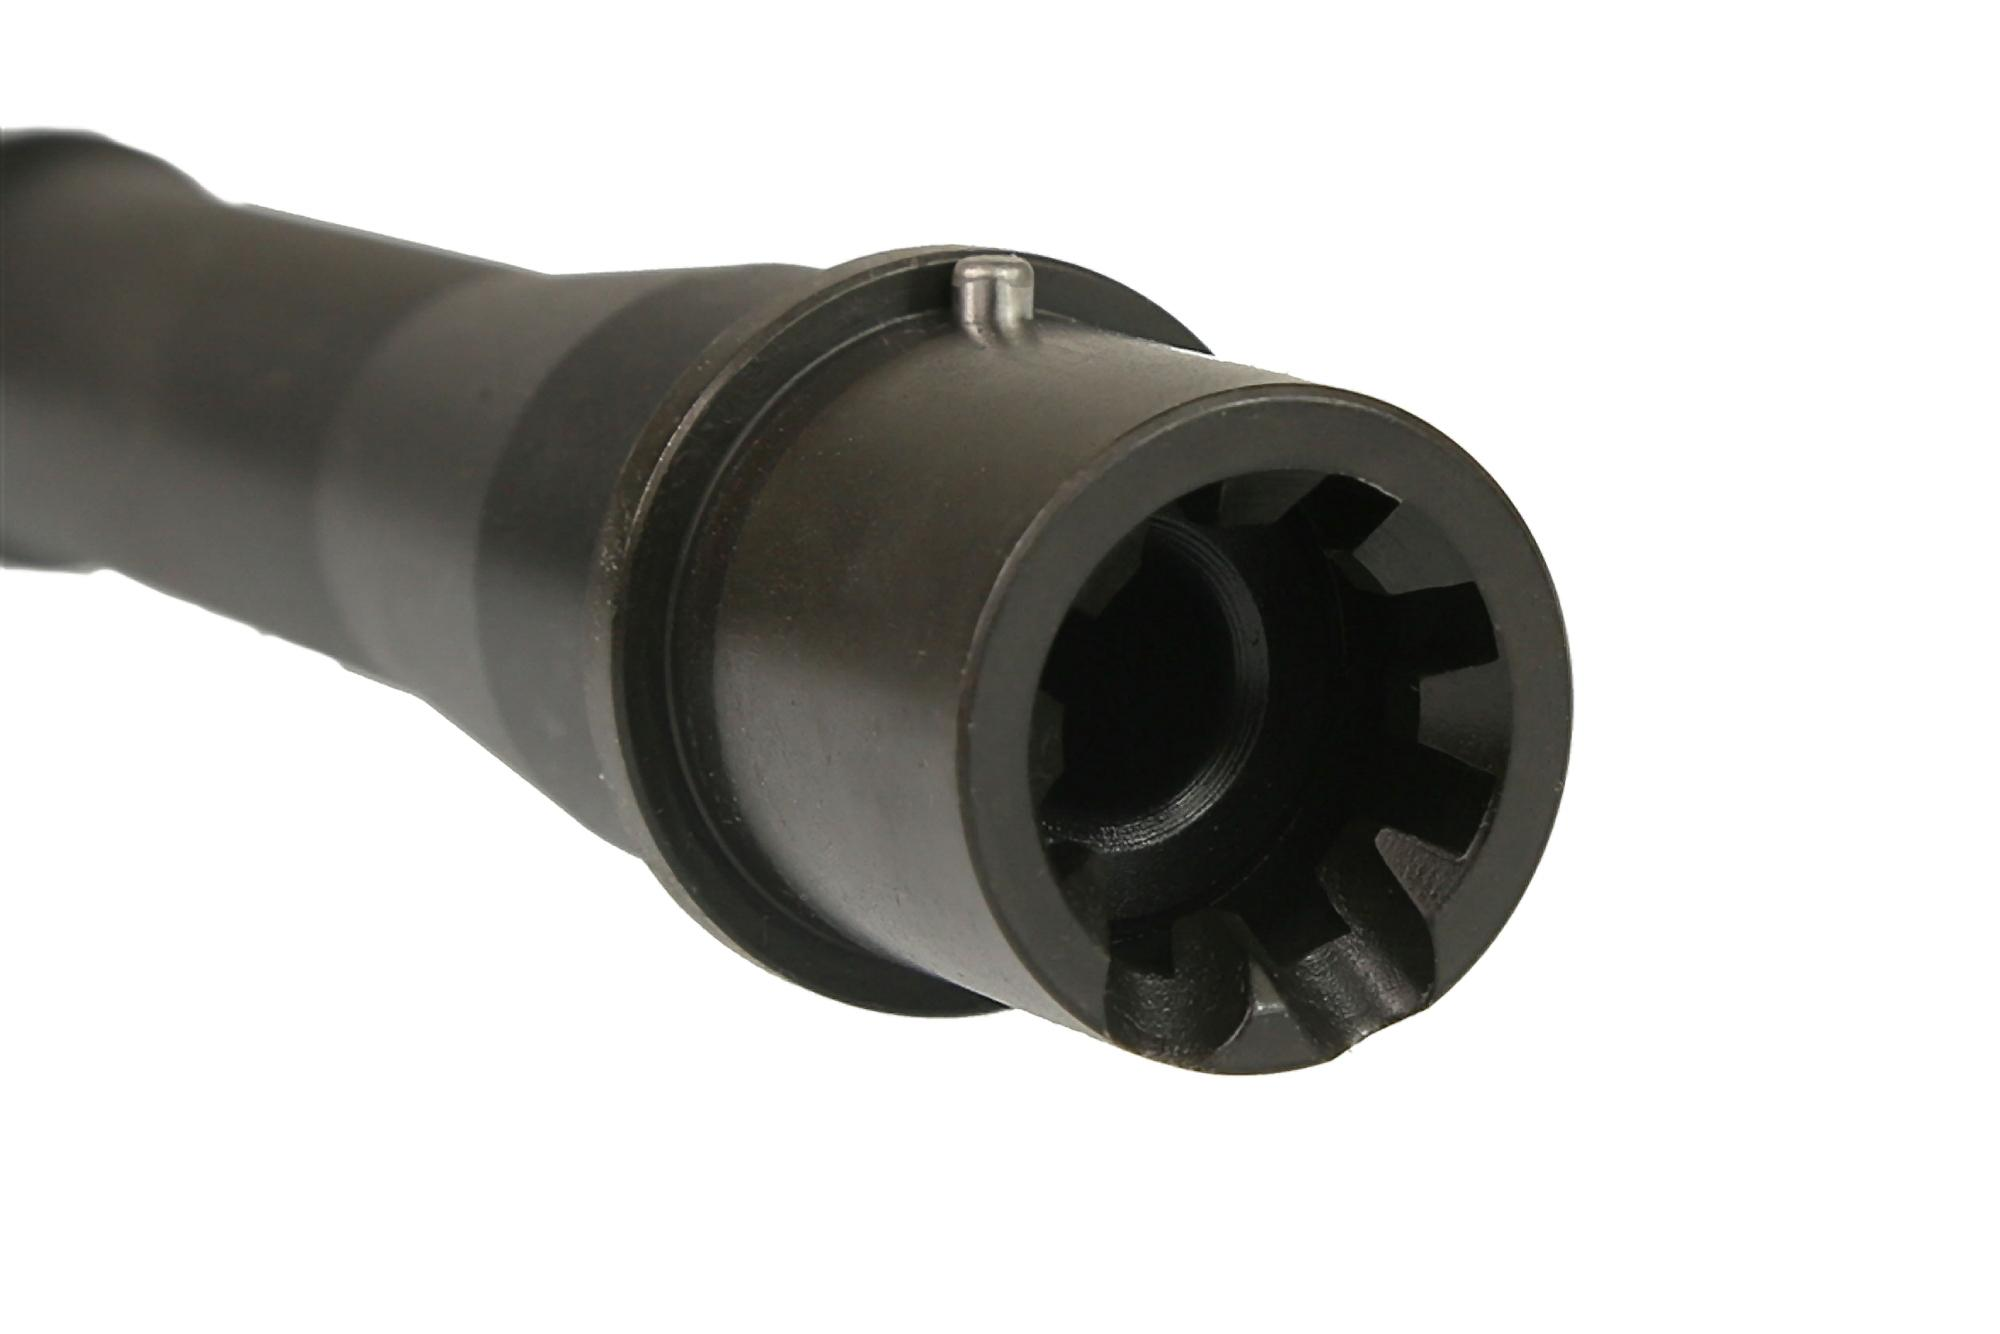 The .300 BLK barrel from CMMG features an M4 barrel extension with feed ramps